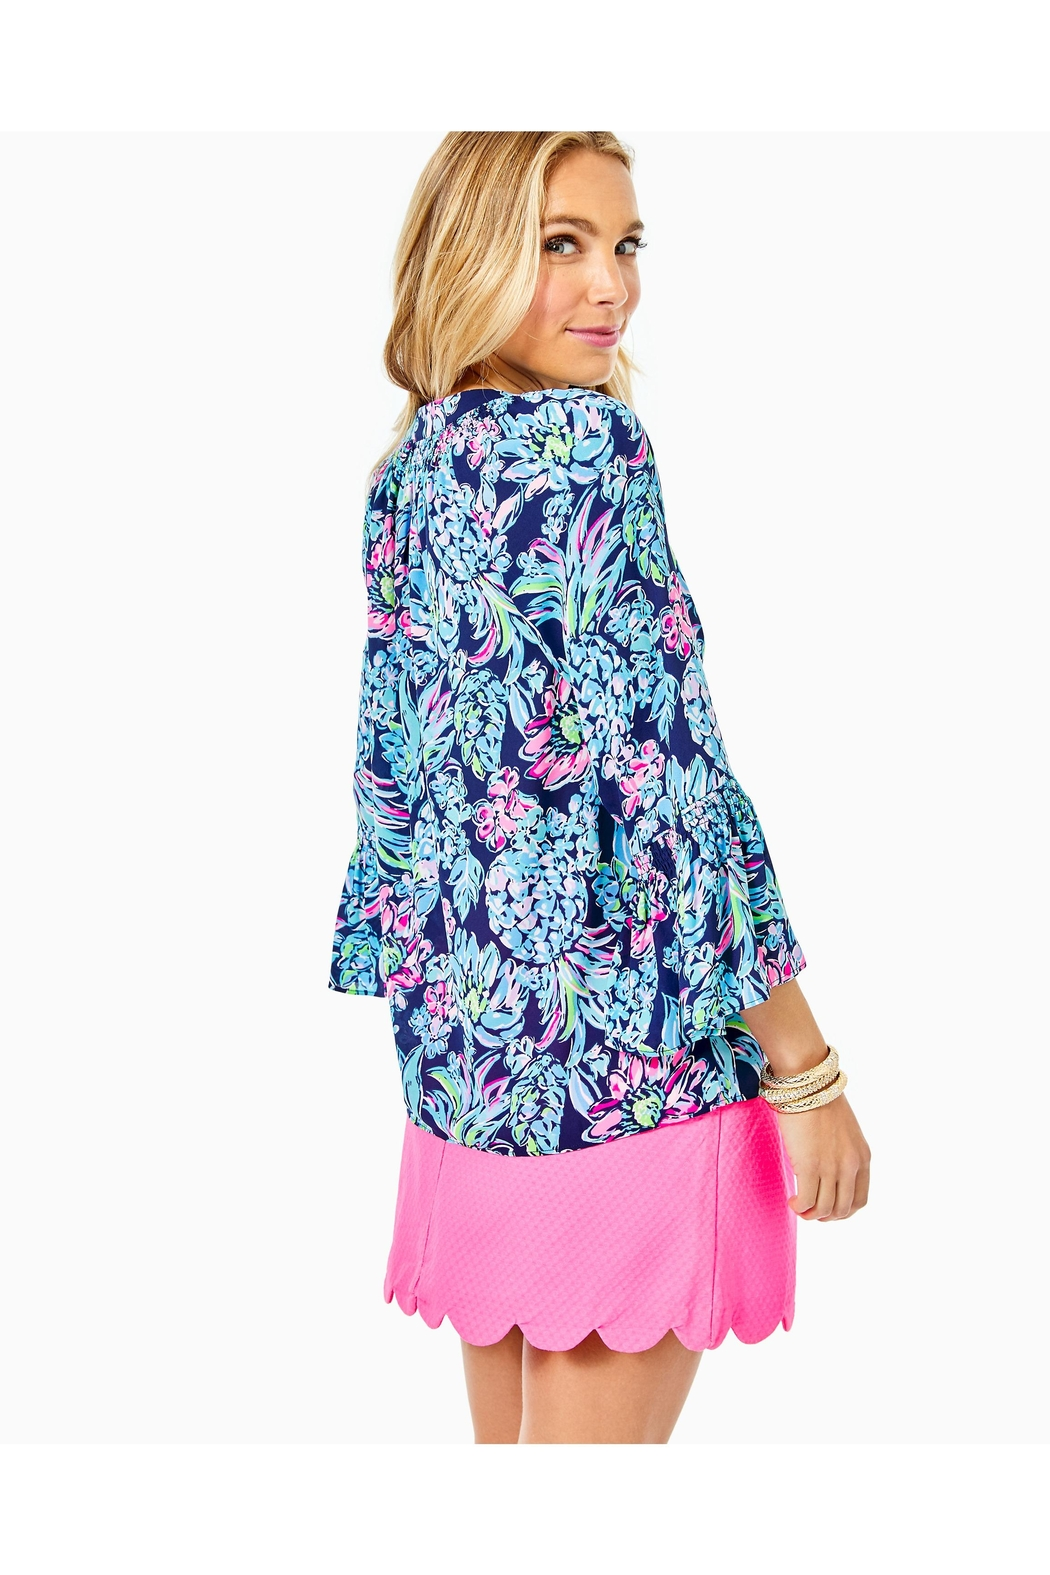 Lilly Pulitzer Dakota Button-Down Top - Front Full Image